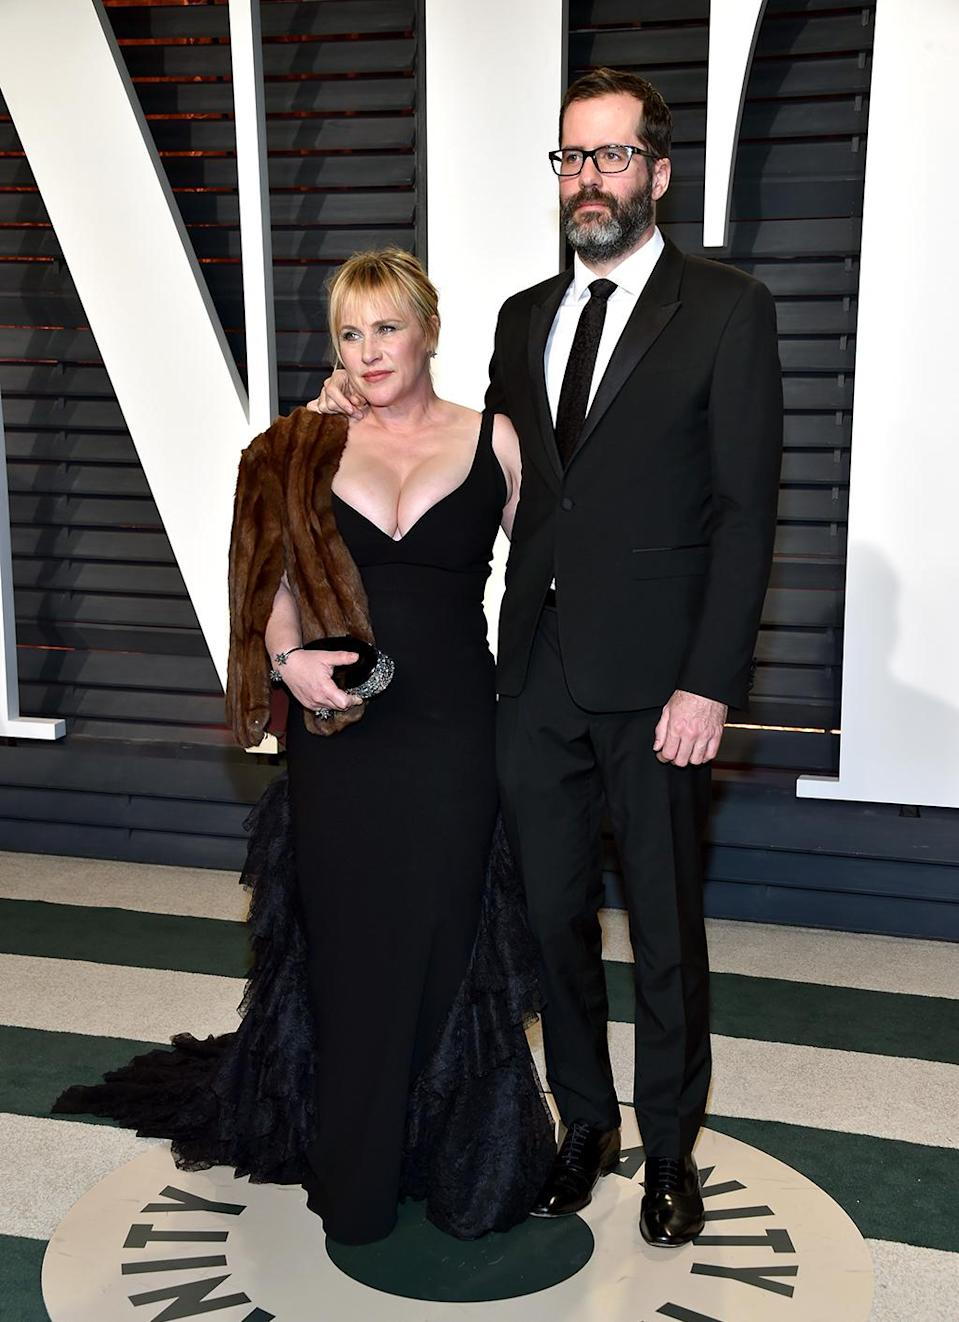 <p>Patricia Arquette and Eric White attend the 2017 Vanity Fair Oscar Party hosted by Graydon Carter at Wallis Annenberg Center for the Performing Arts on February 26, 2017 in Beverly Hills, California. (Photo by Pascal Le Segretain/Getty Images) </p>